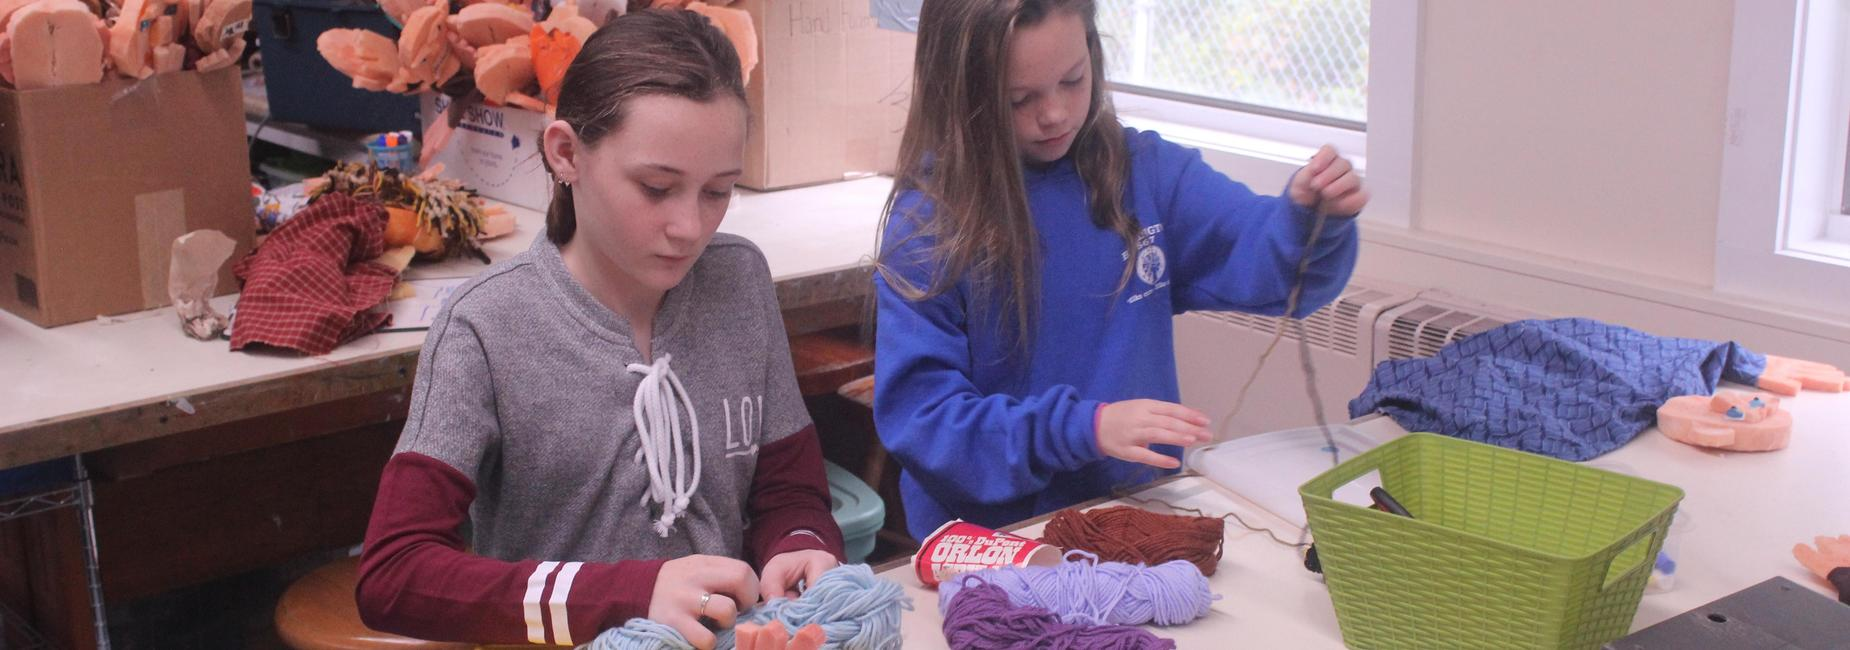 students crafting with yarn